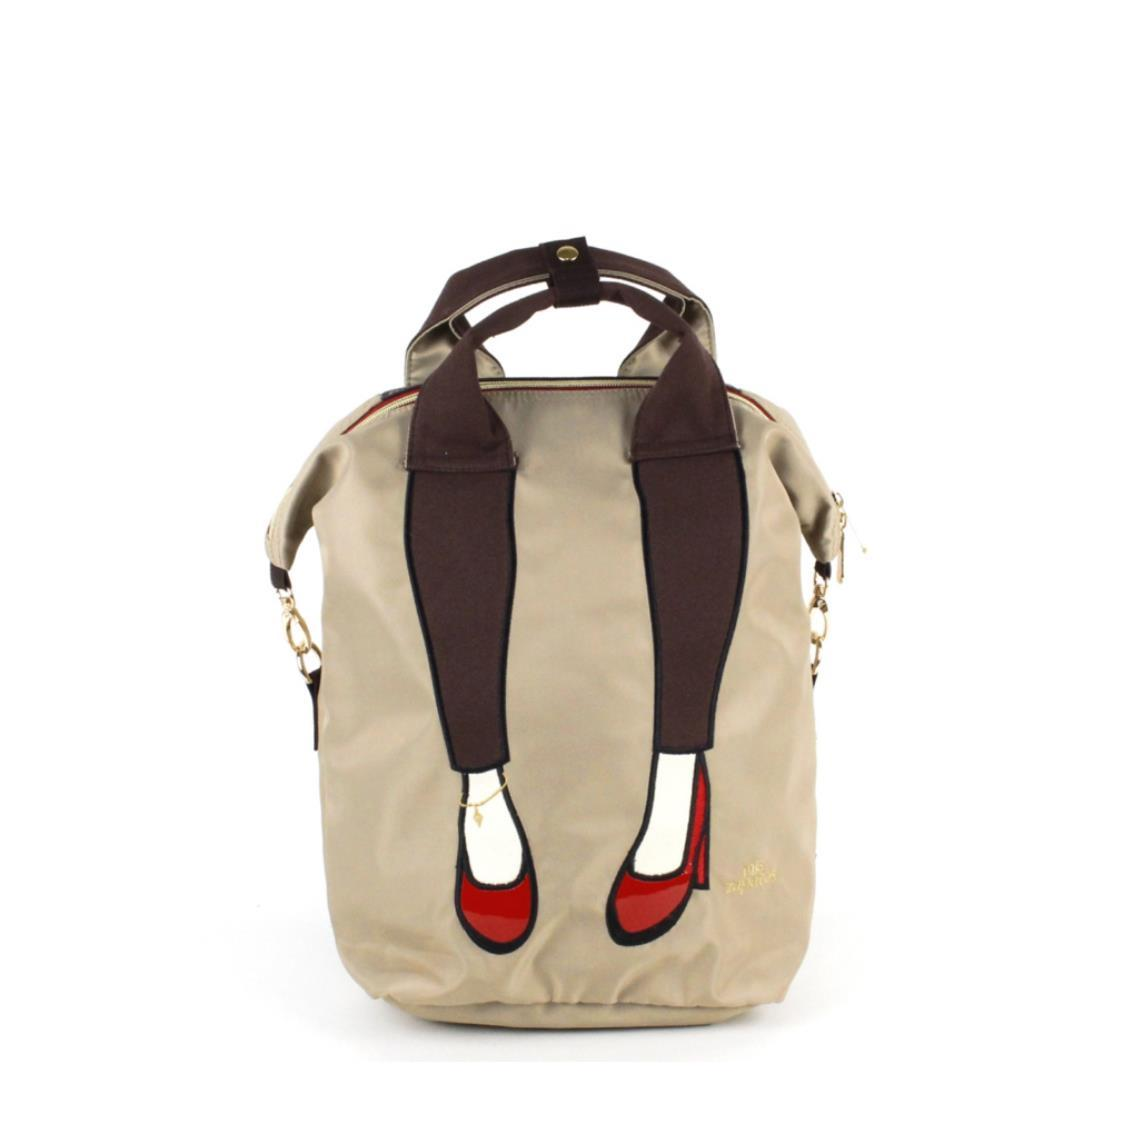 3-Way Use Jeans with High Heels Backpack Beige